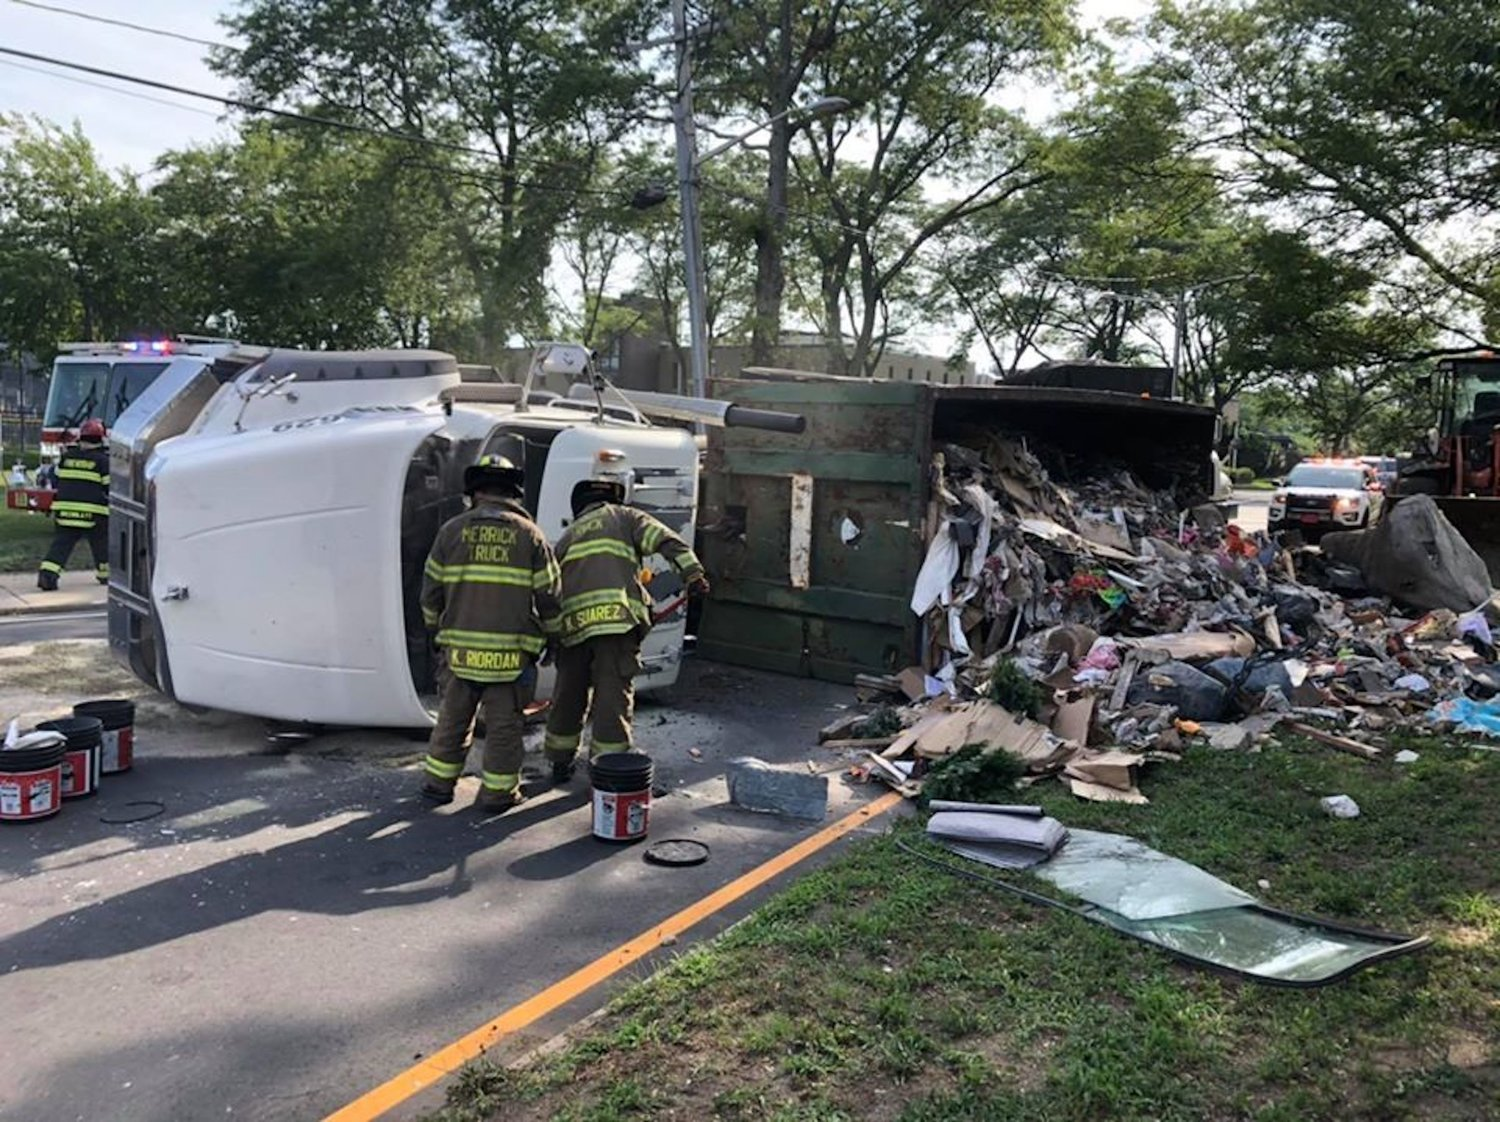 On Sunday, the Merrick Fire Department responded to an overturned sanitation container truck on Merrick Road near the entrance of the Town of Hempstead's waste transfer station in Merrick.